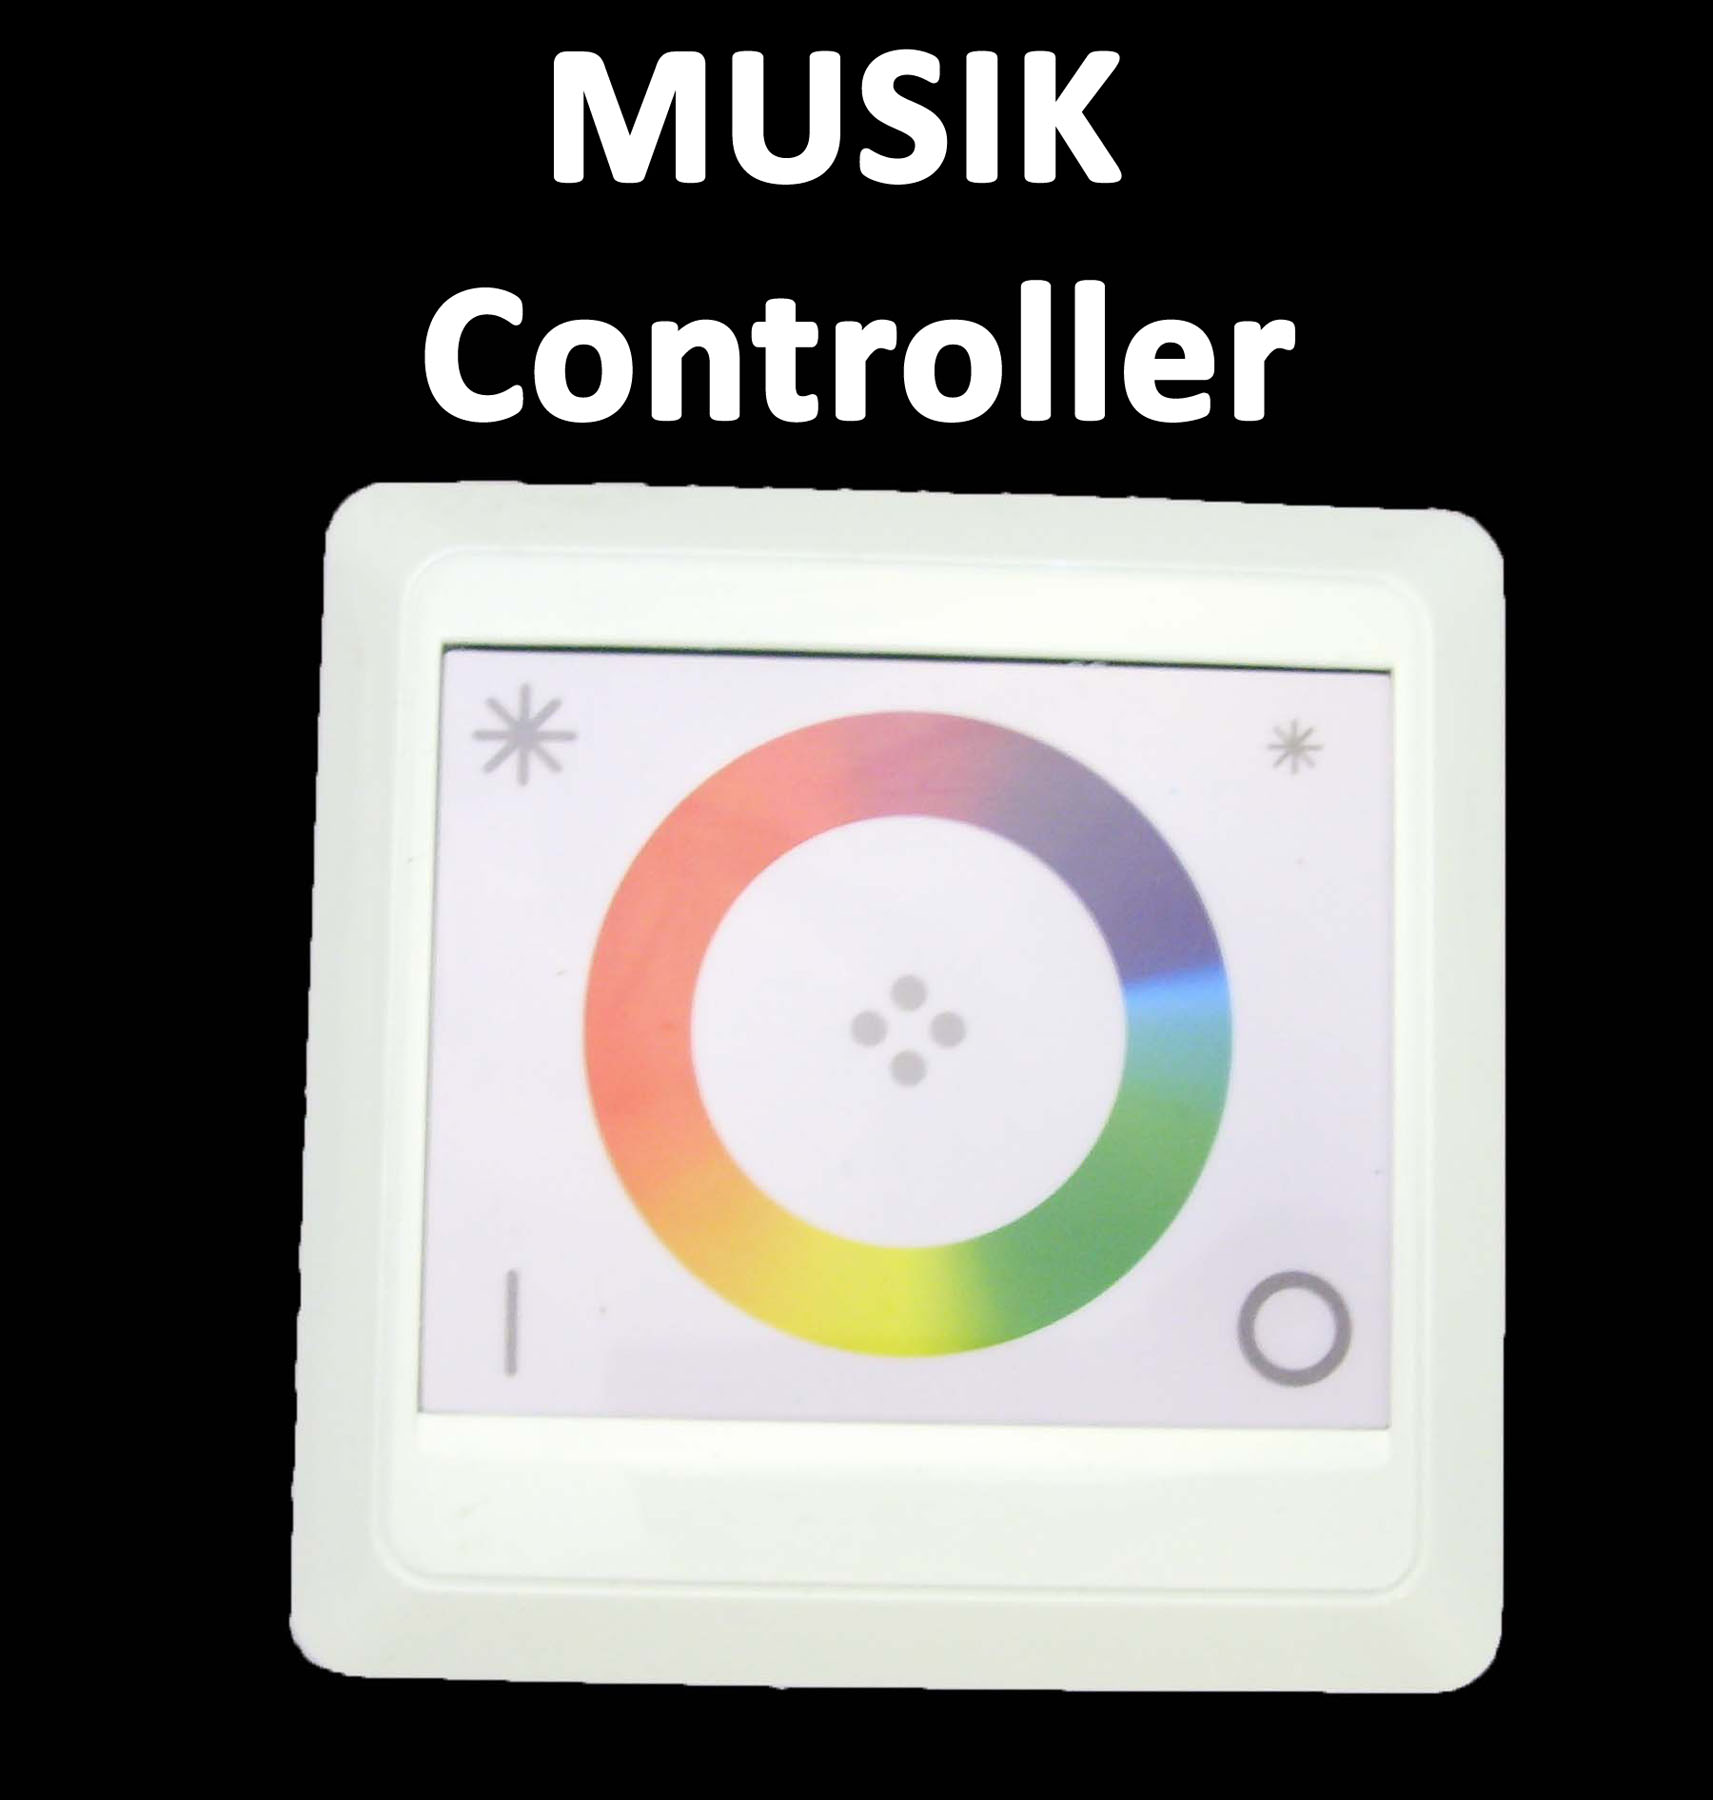 musik akustik touch wand einbau rgb led 12v 8a 96w controller steuerung dimmer ebay. Black Bedroom Furniture Sets. Home Design Ideas